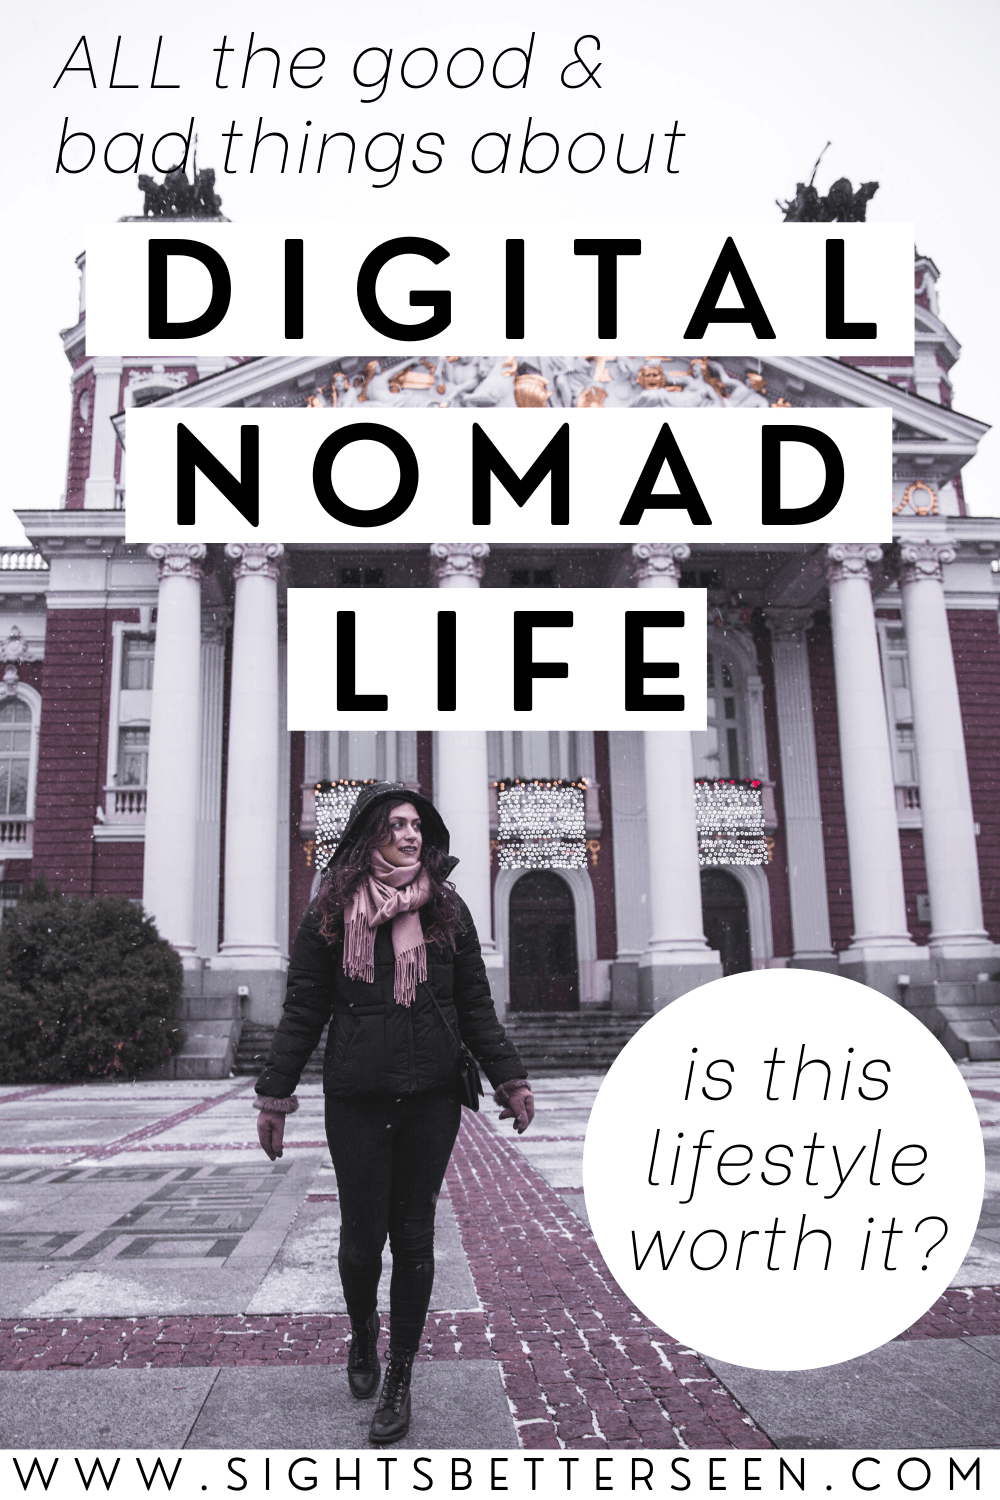 Kelsey outside the National Theater in Sofia, Bulgaria